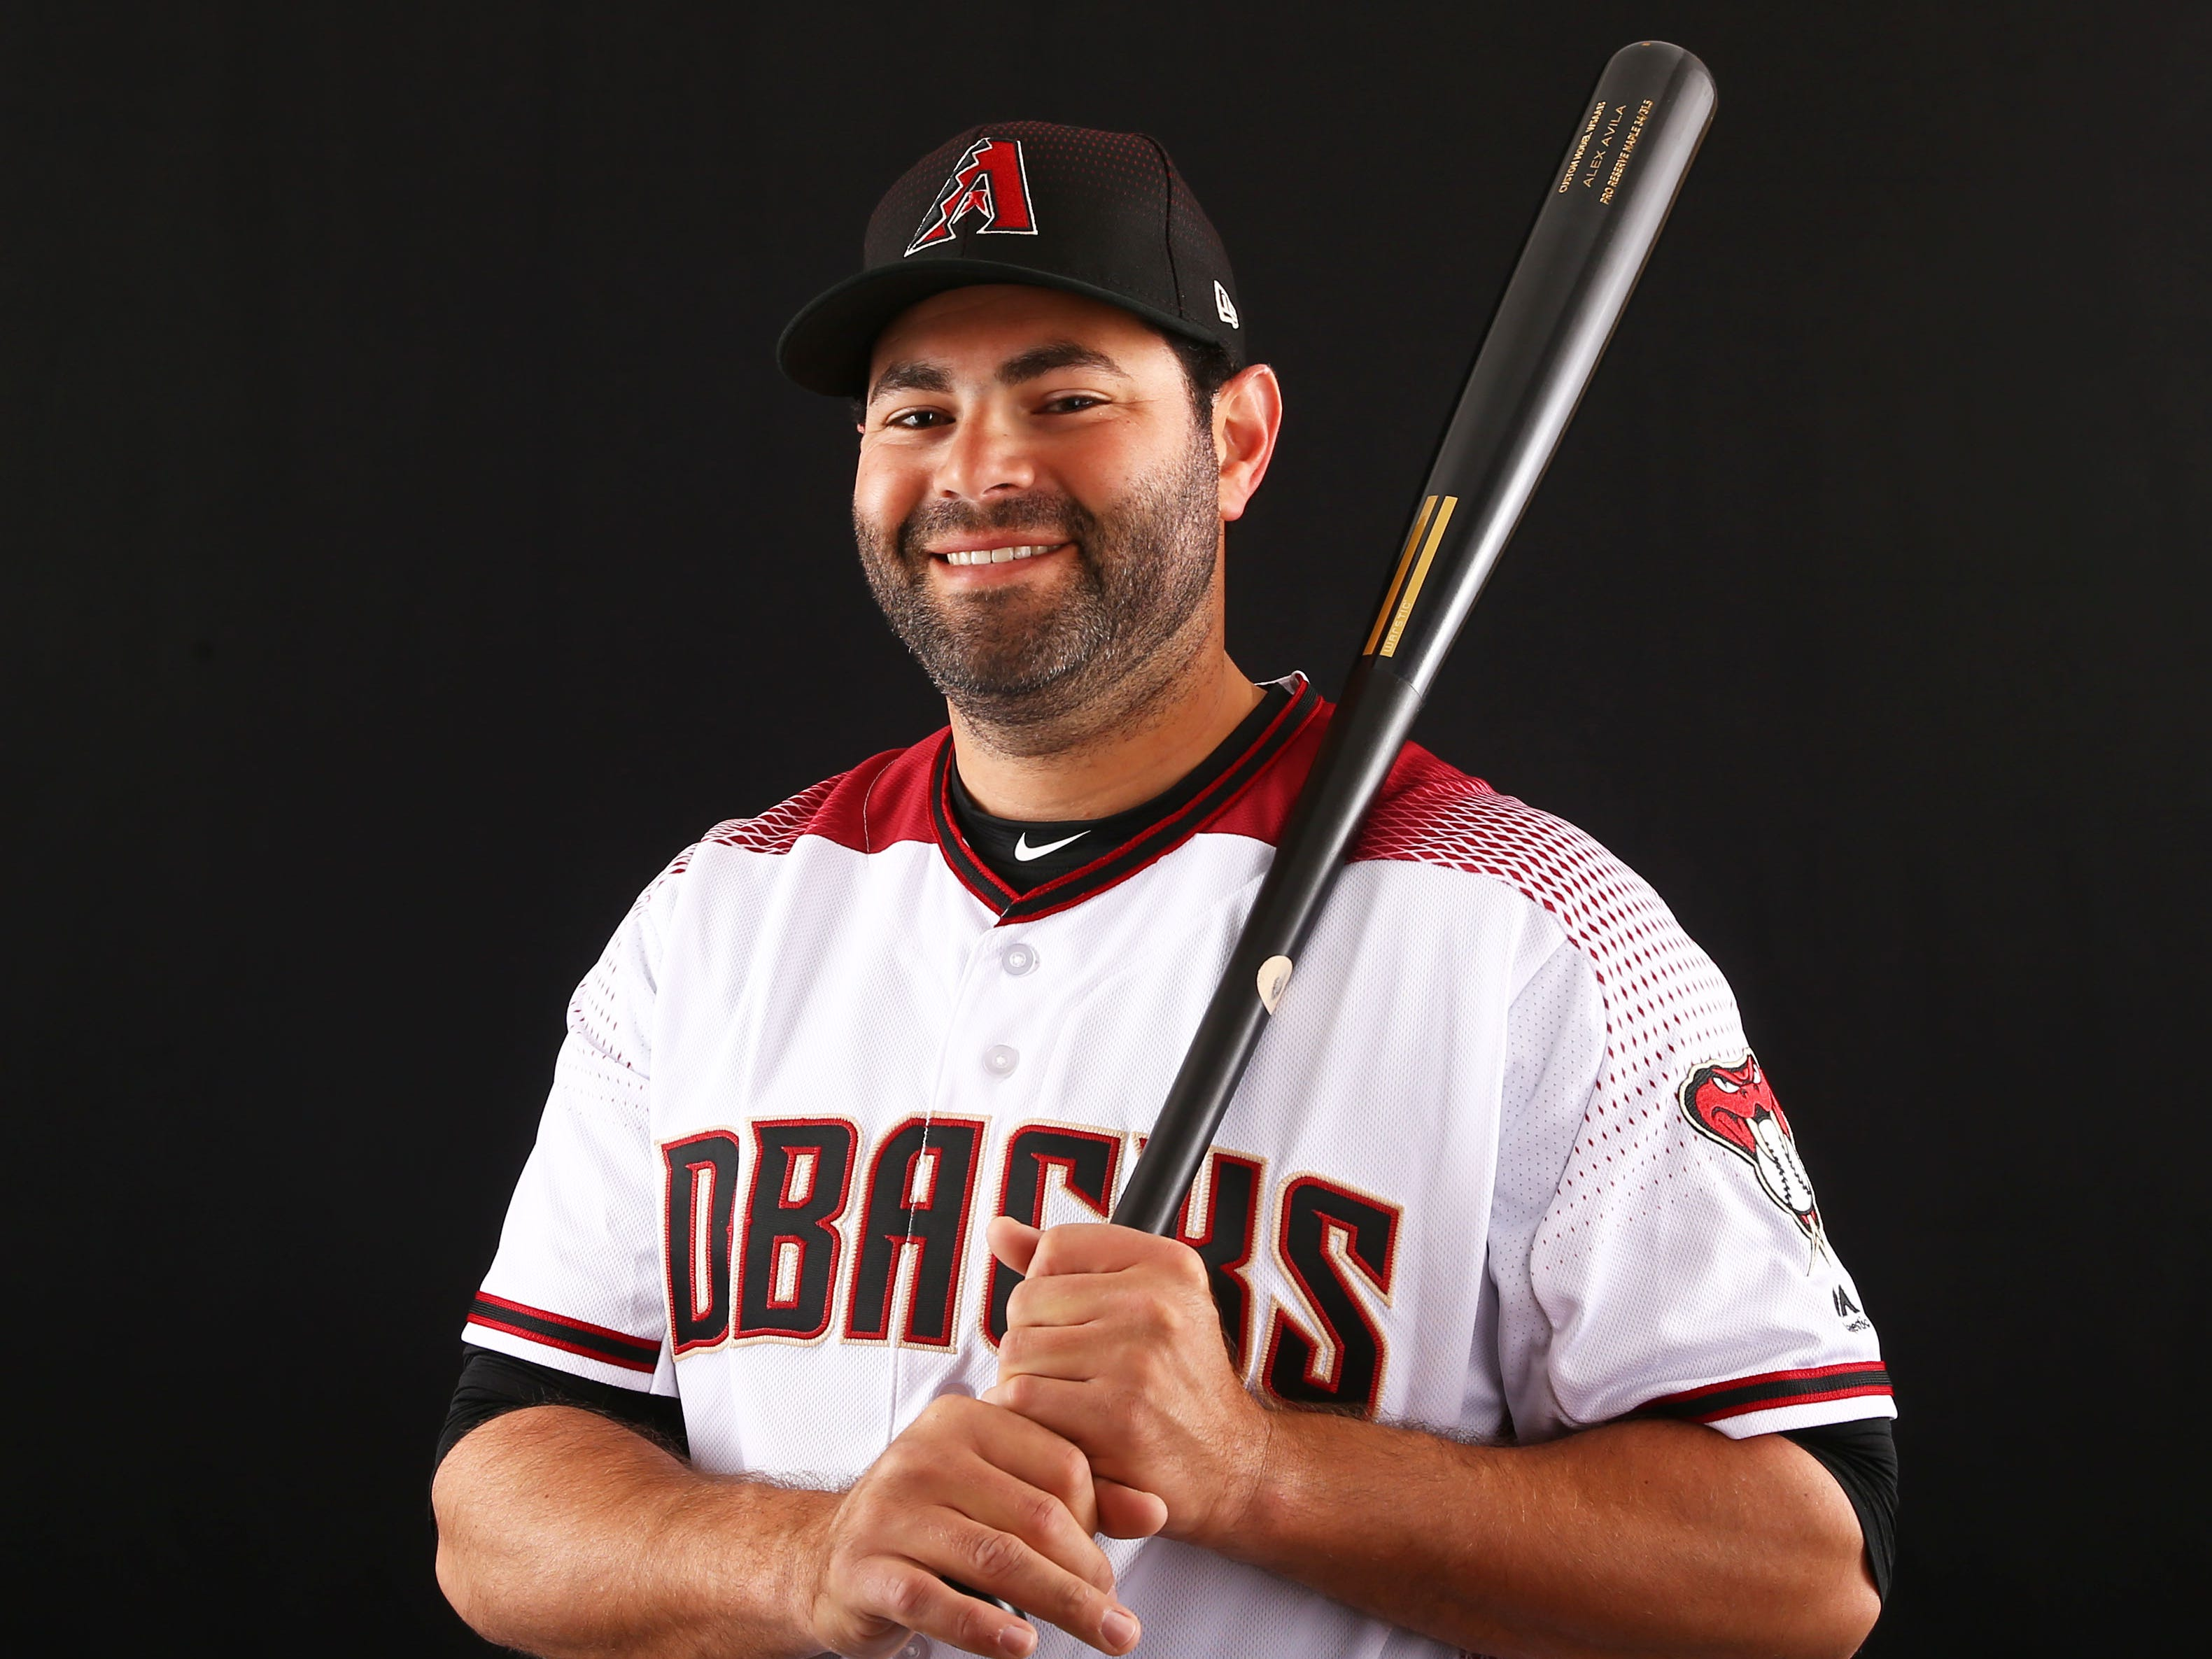 Alex Avila of the Arizona Diamondbacks poses for a photo during the annual Spring Training Photo Day on Feb. 20 at Salt River Fields in Scottsdale, Ariz.